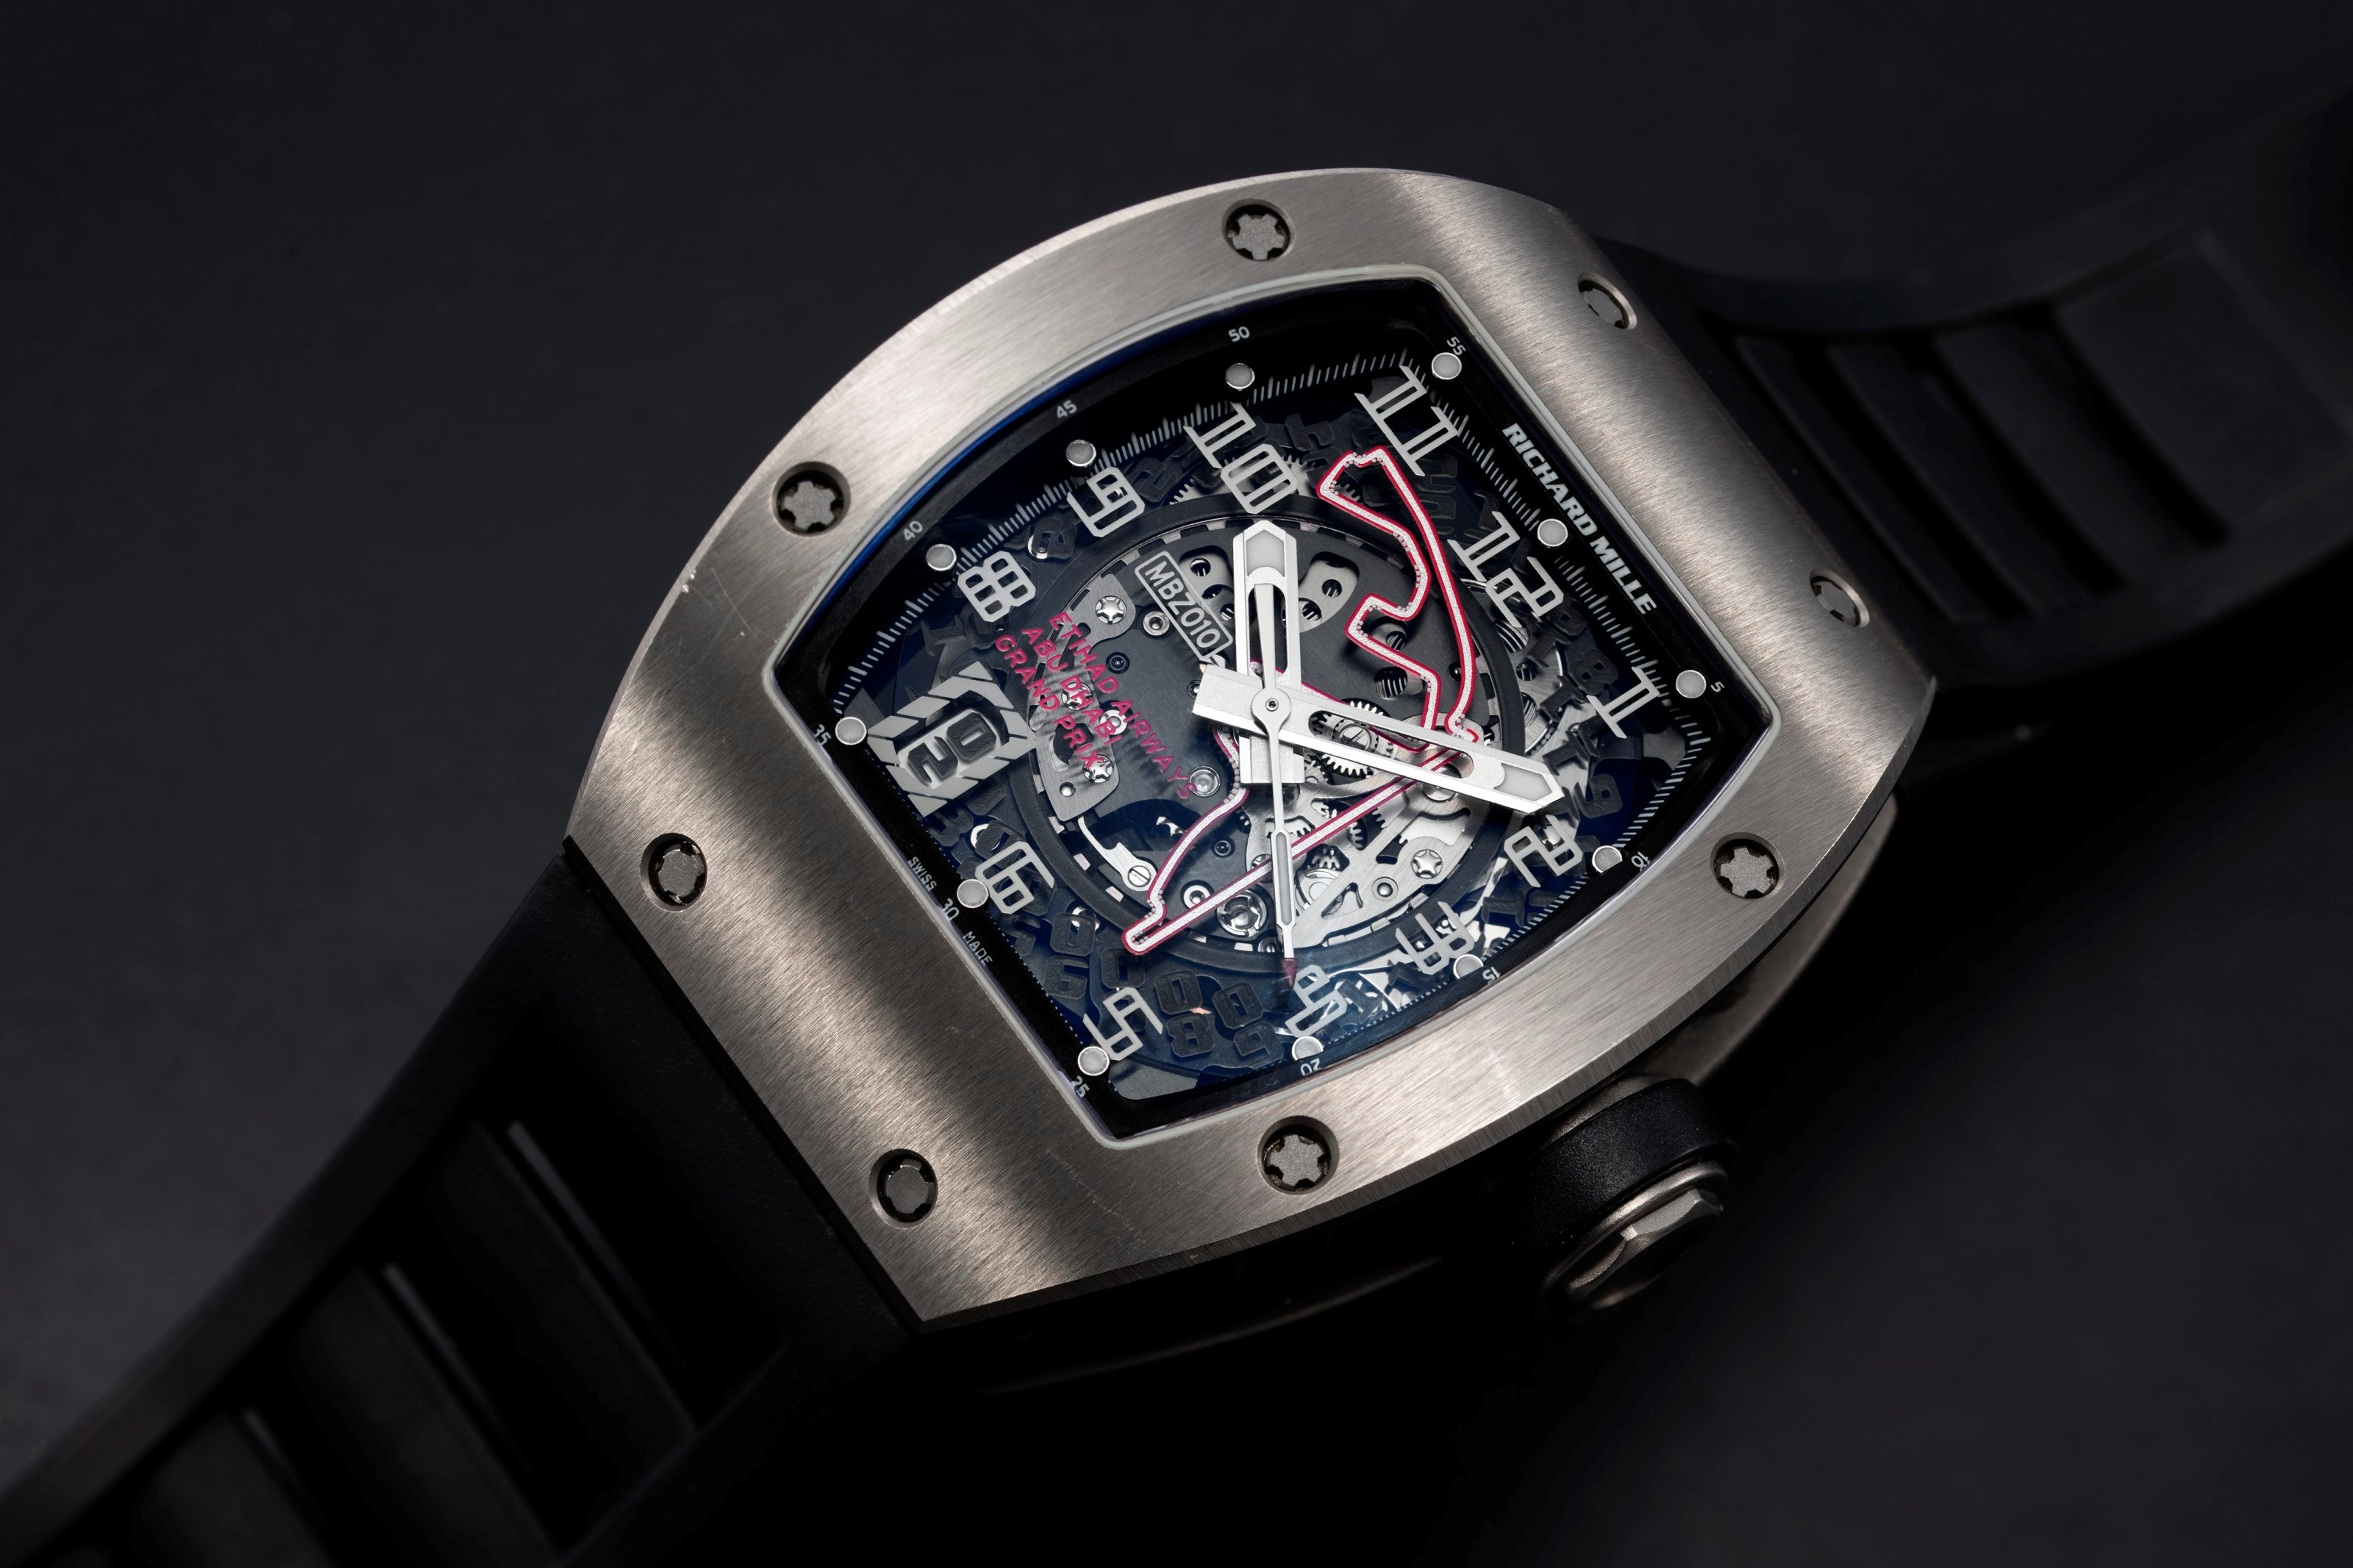 Richard Mille, a titanium RM010 to mark 1st Abu Dhabi F1 Grand Prix, MBZ Limited Edition 081200. Sold for $137,500 on 8 April 2021, Online